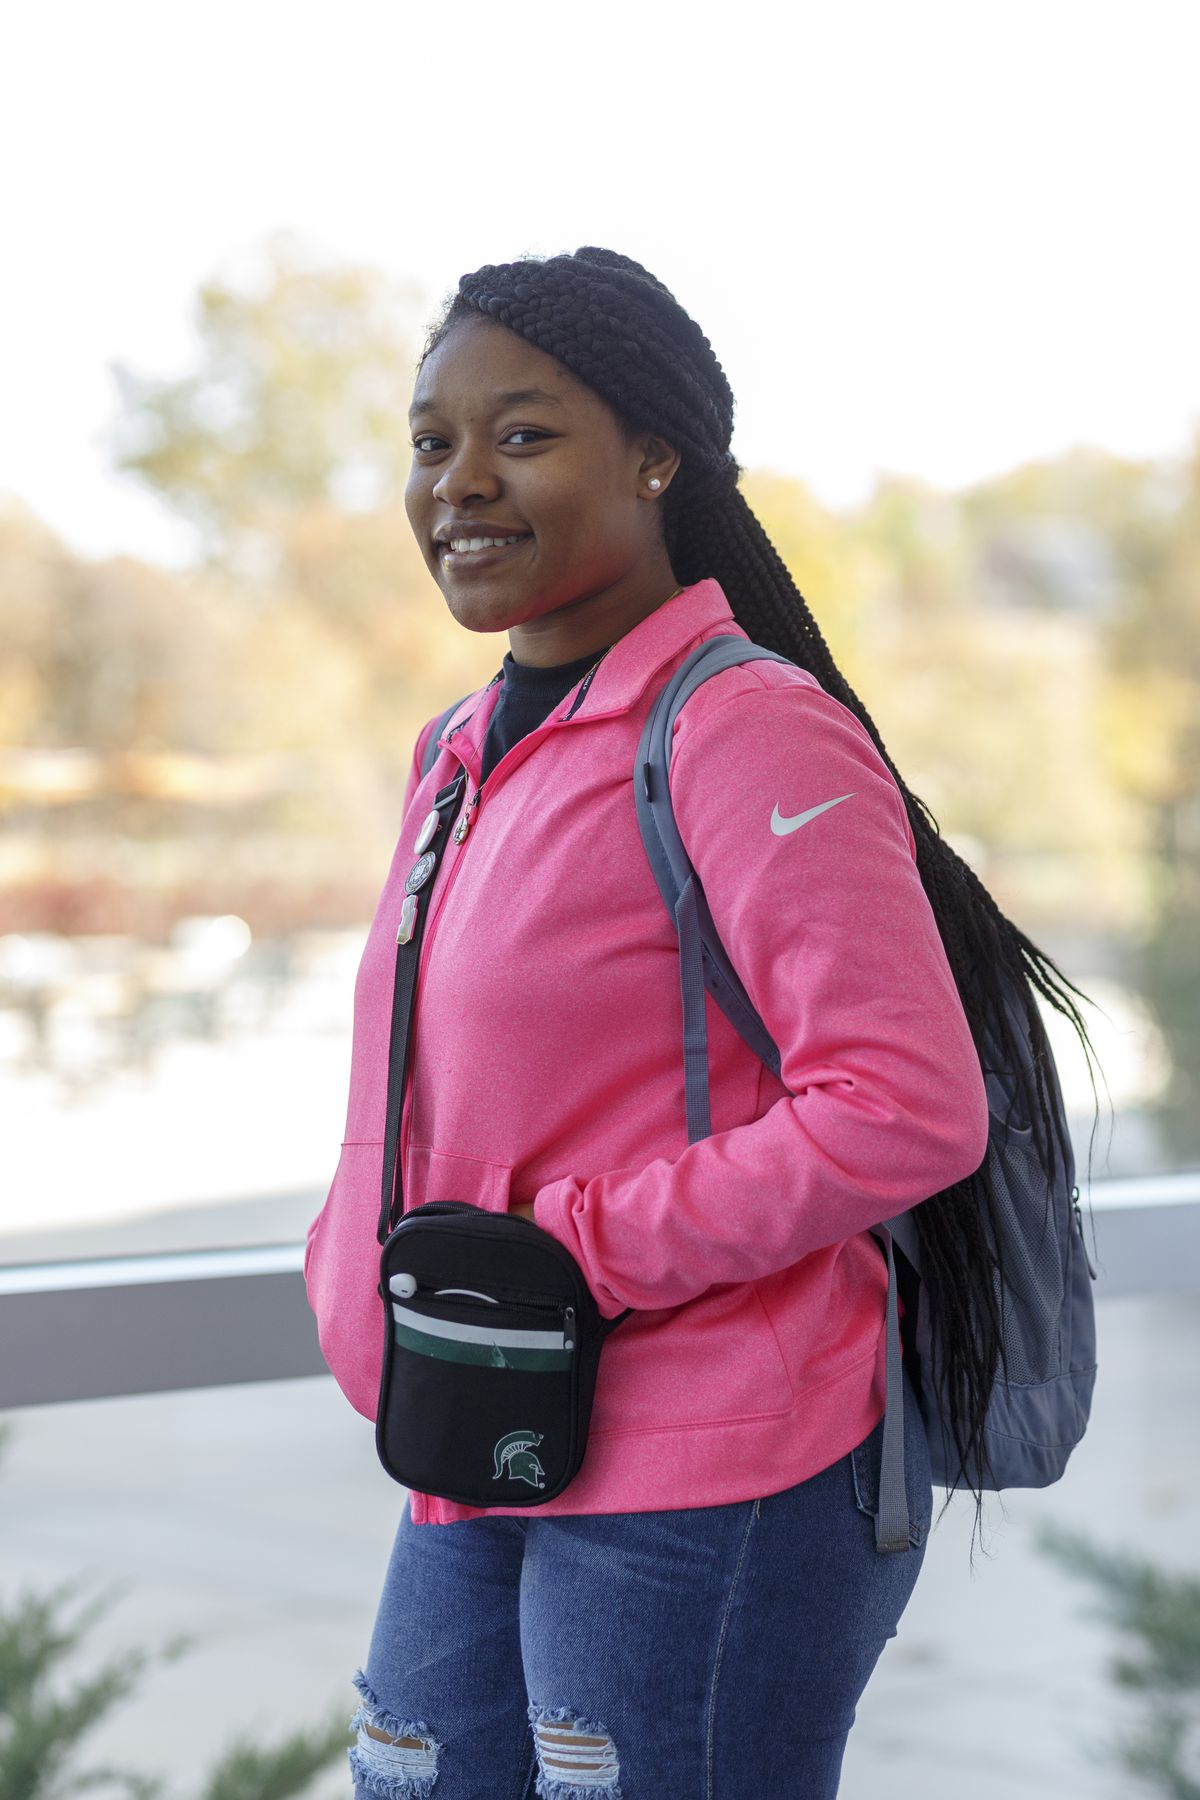 Kashia Perkins, a freshman at Michigan State University, poses for a photograph on Wednesday, Oct. 23, 2019.